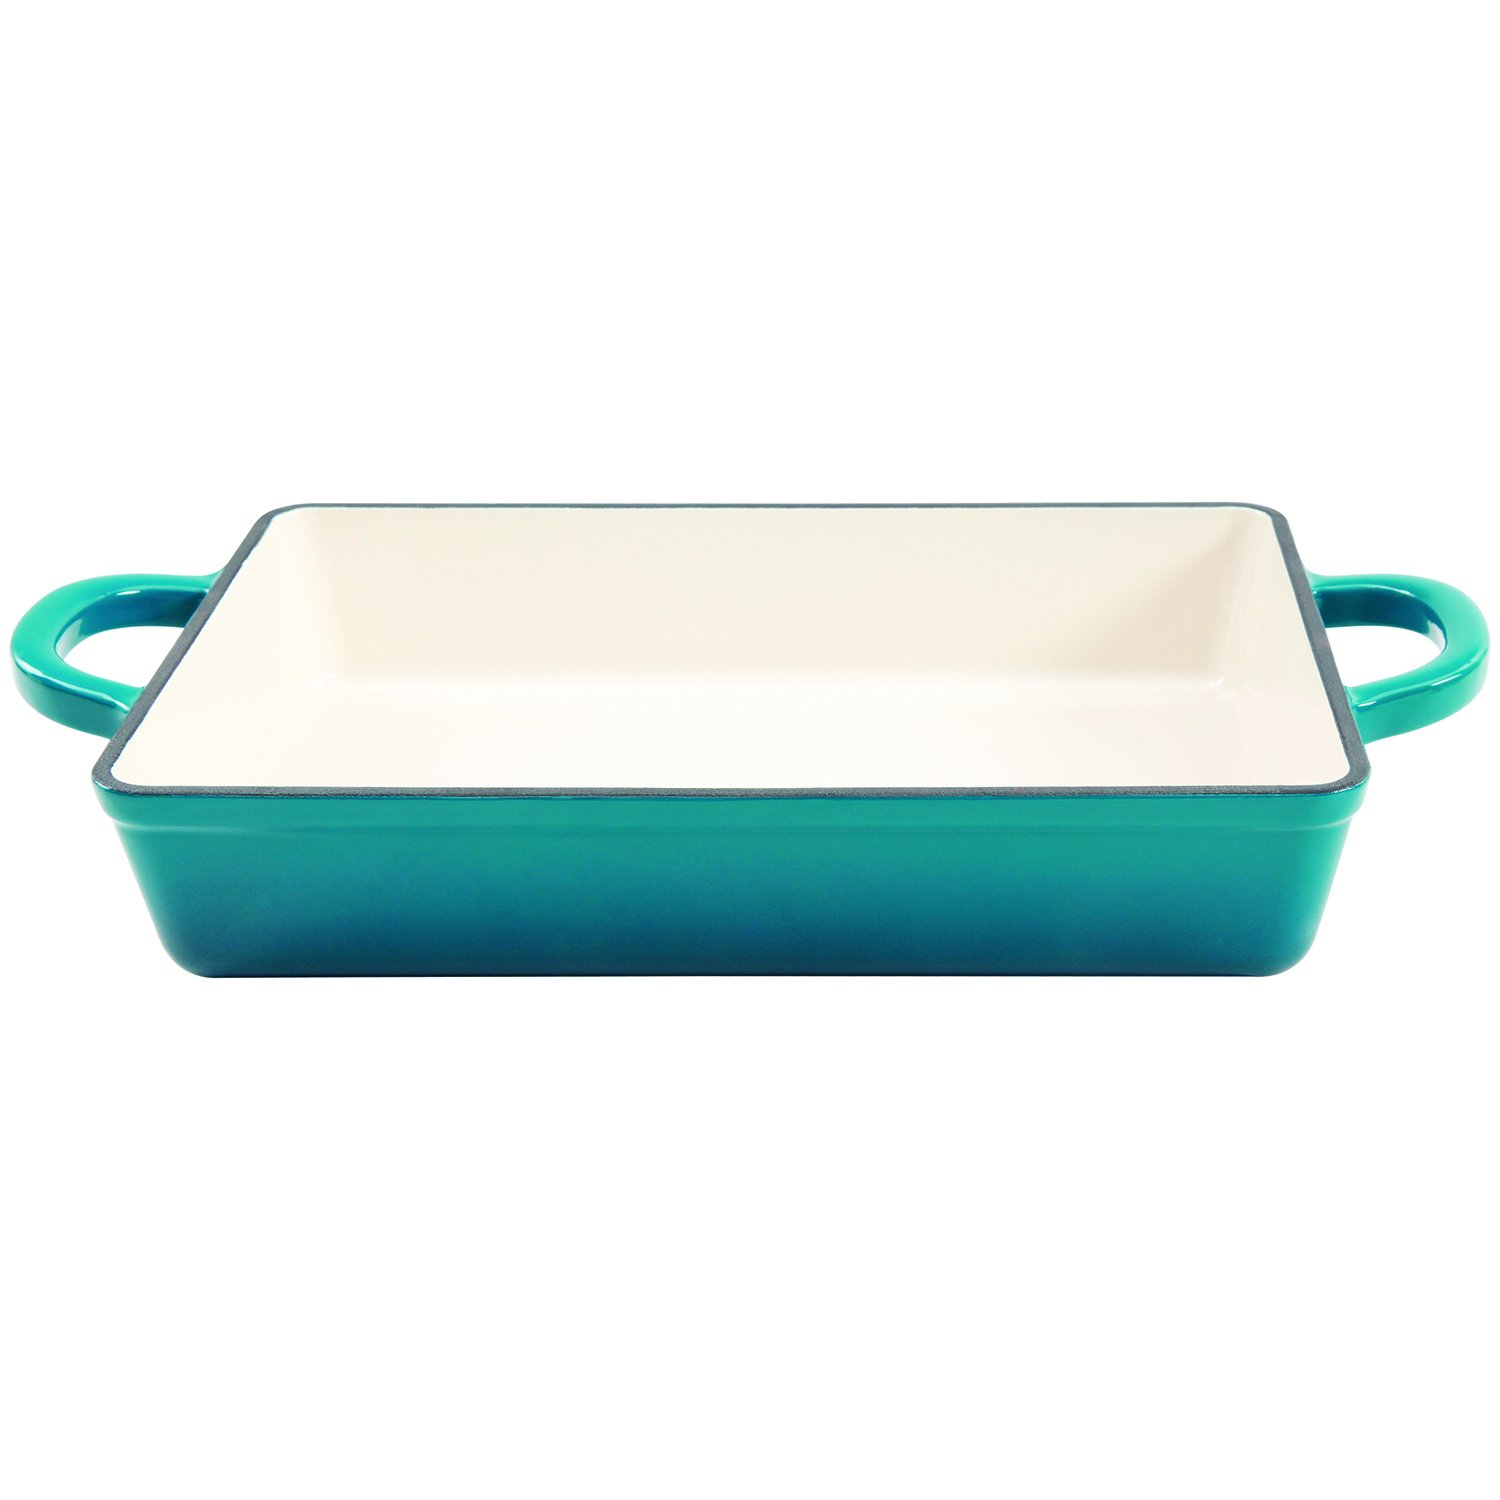 Crock Pot 112008.01 Artisan 13 Inch Enameled Cast Iron Lasagna Pan, Teal Ombre